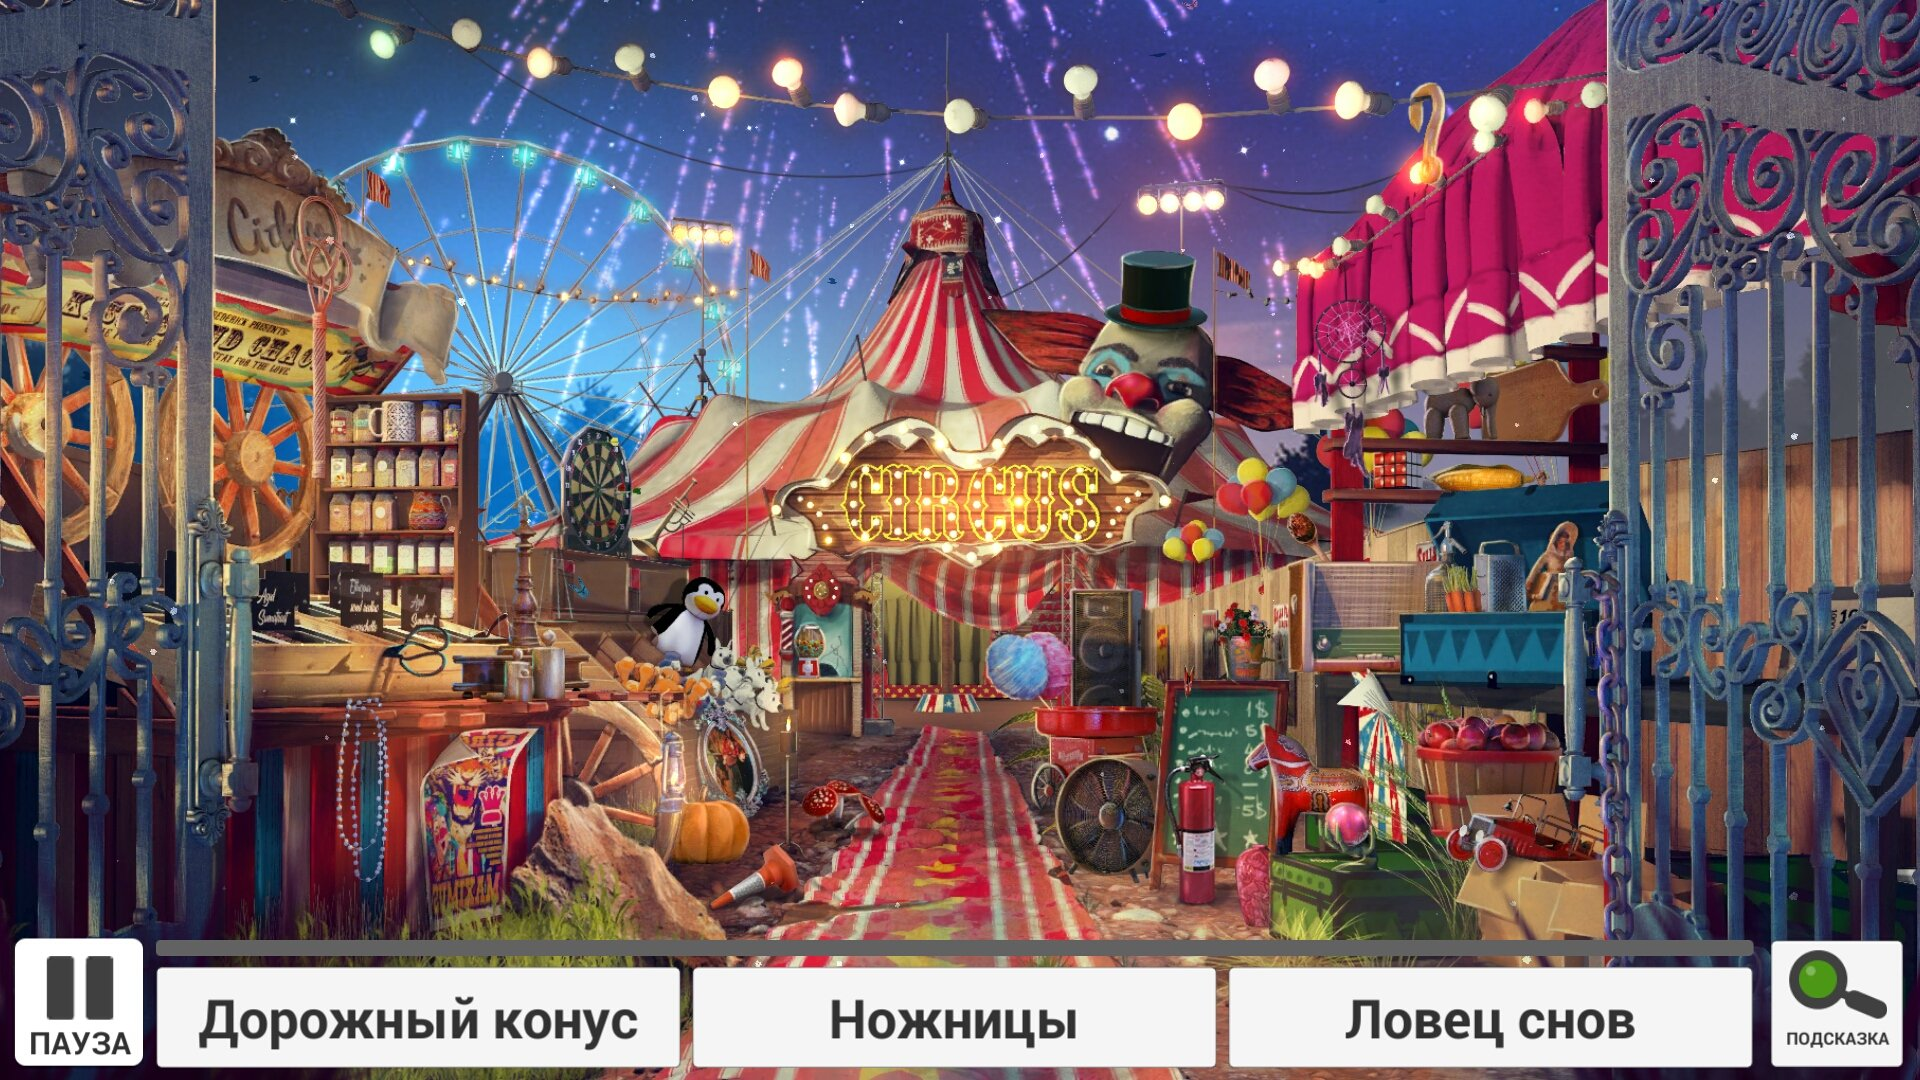 Happy Circus for free online with no download!